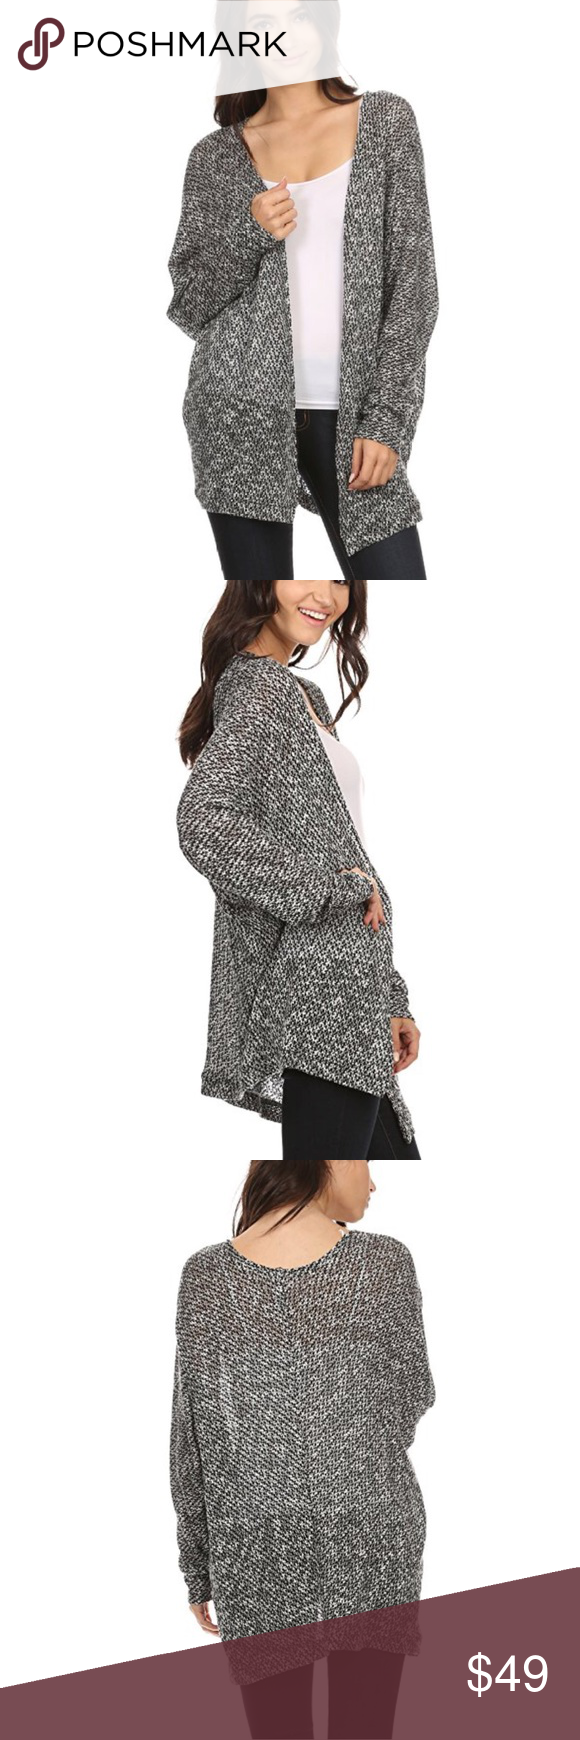 Caraity soft cable knit cardigan Boutique   Cable knit cardigan ...